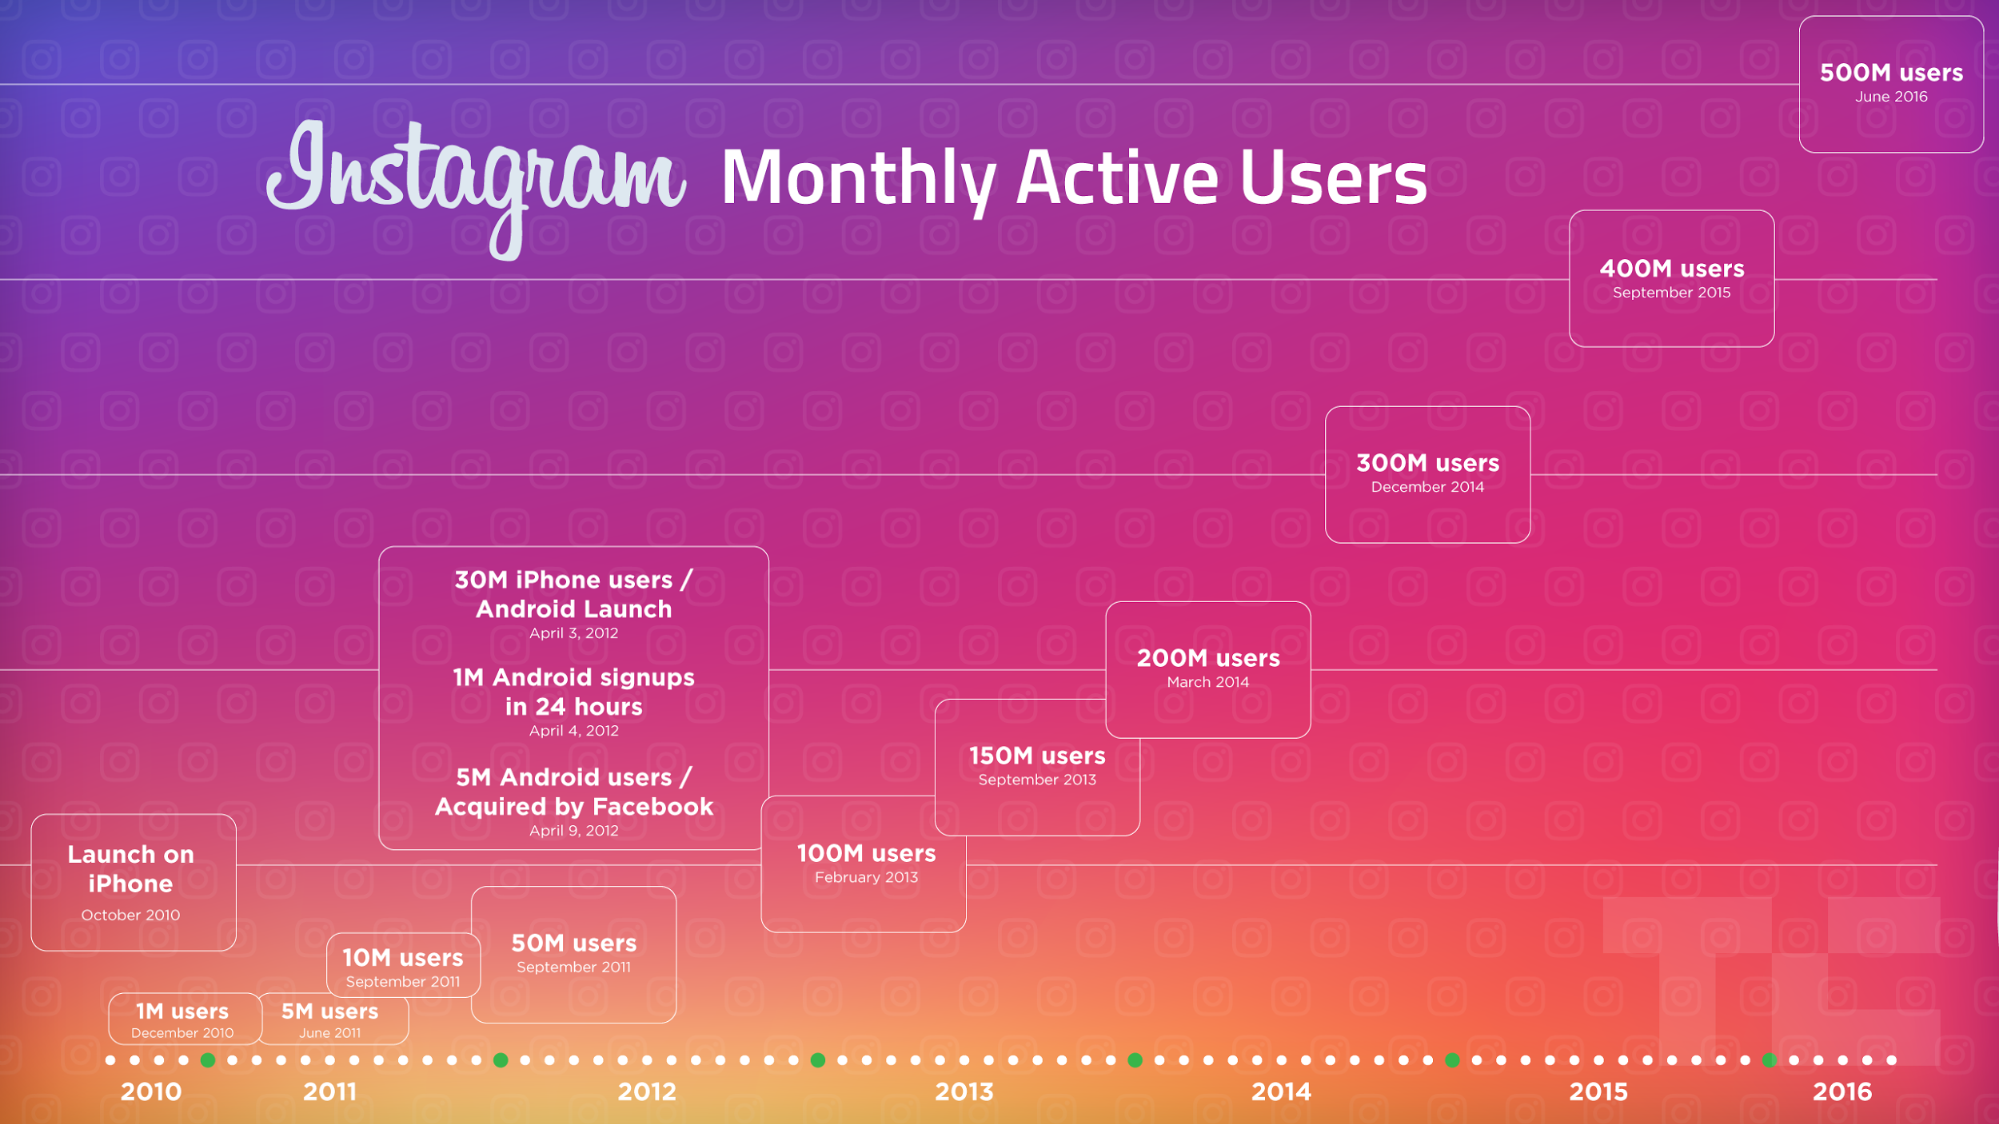 Instagram monthly active users statistics